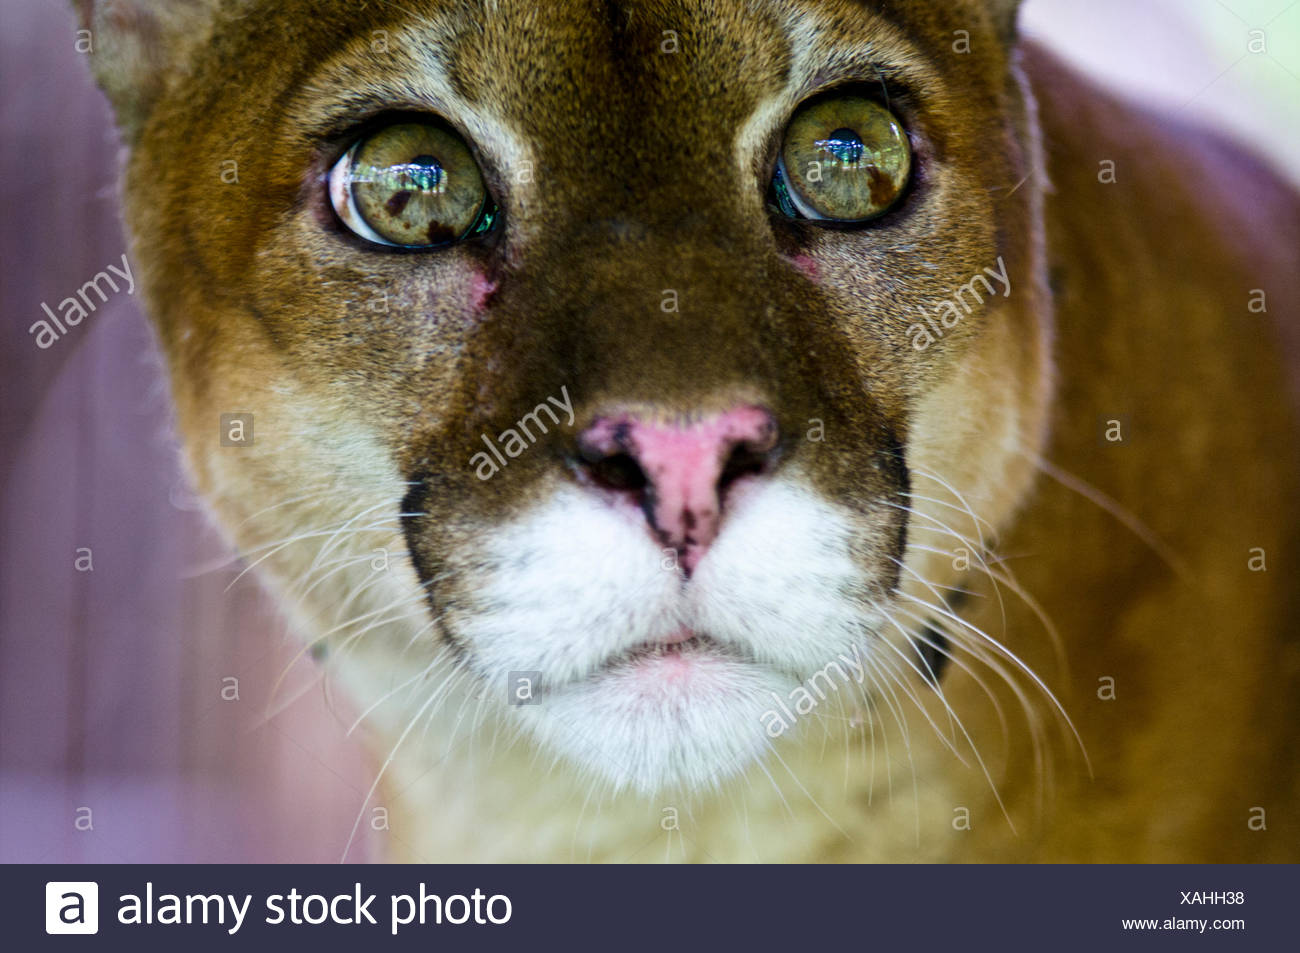 The wide-eyed inquisitive yet serene stare of a Mountain Lion with lime green eyes. - Stock Image